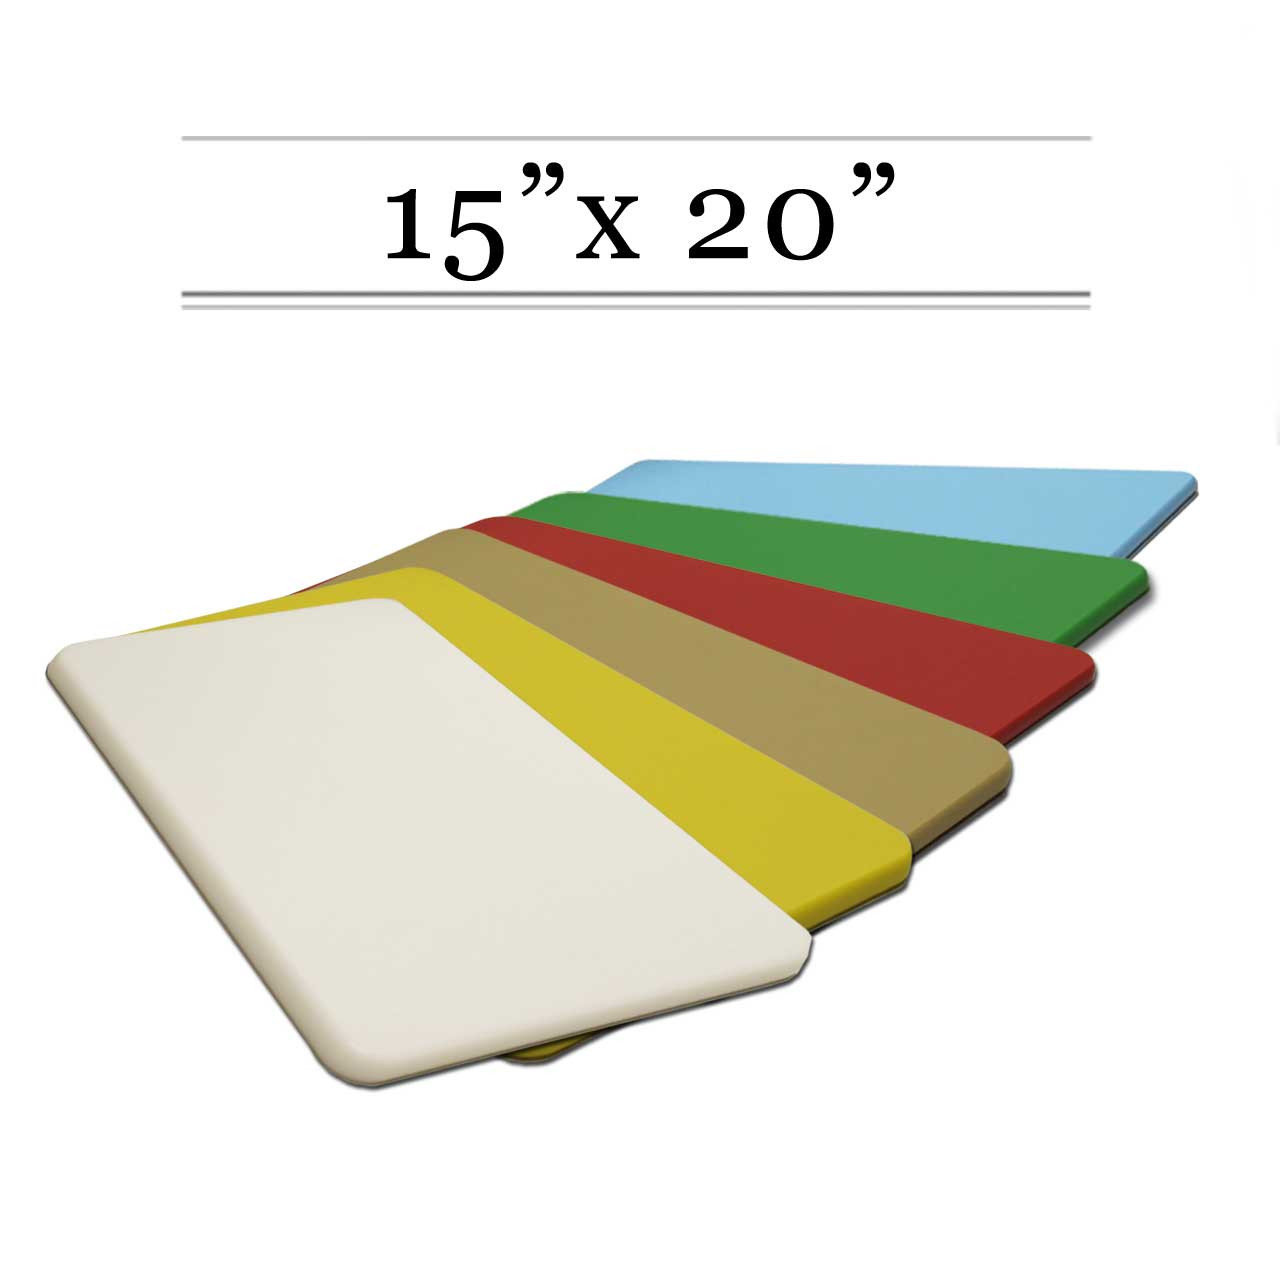 standard size cutting boards  commercial quality custom sized, Kitchen design